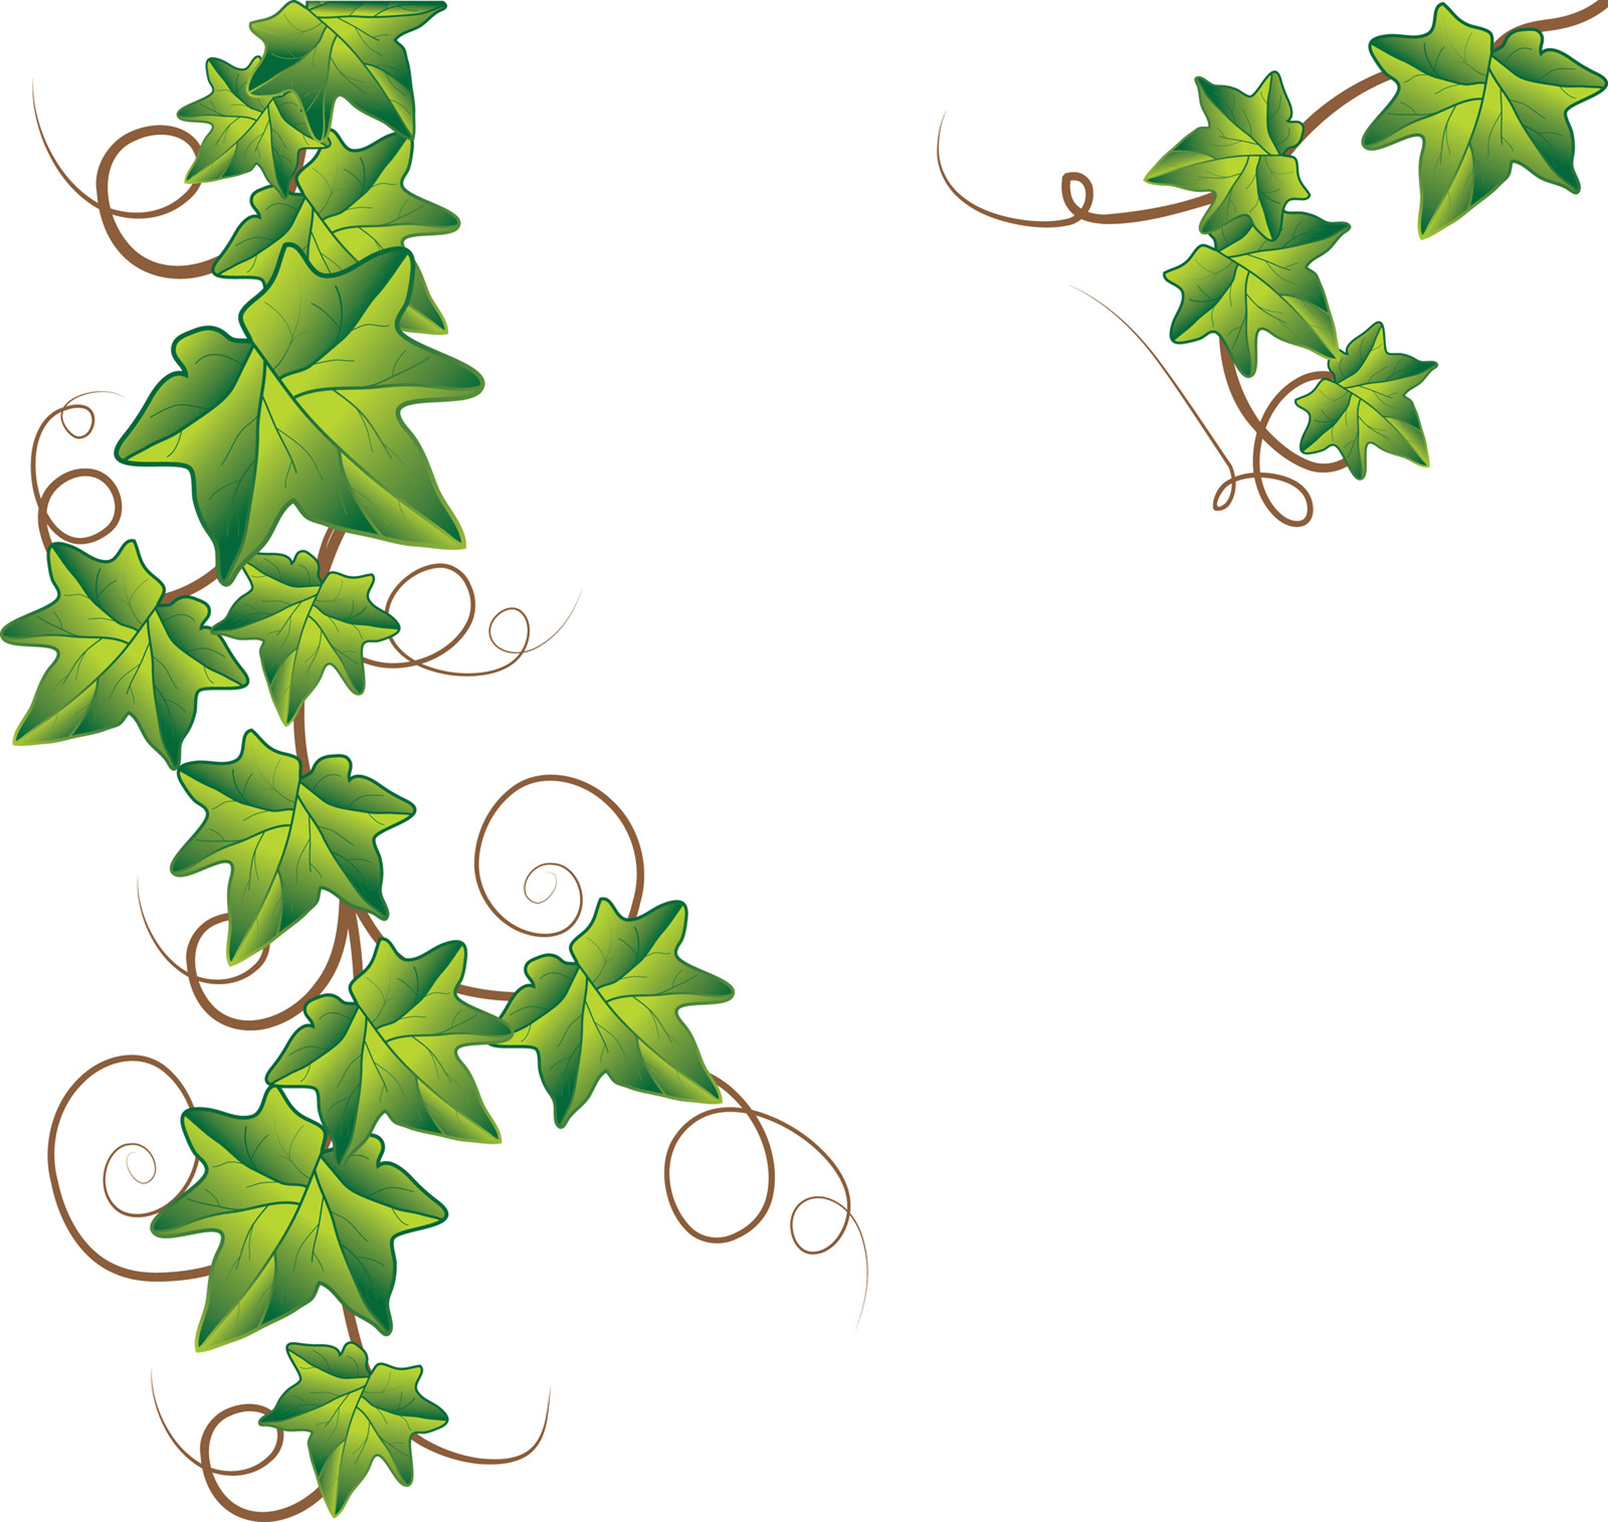 Vine corner clipart banner free library Free Vines Border, Download Free Clip Art, Free Clip Art on Clipart ... banner free library